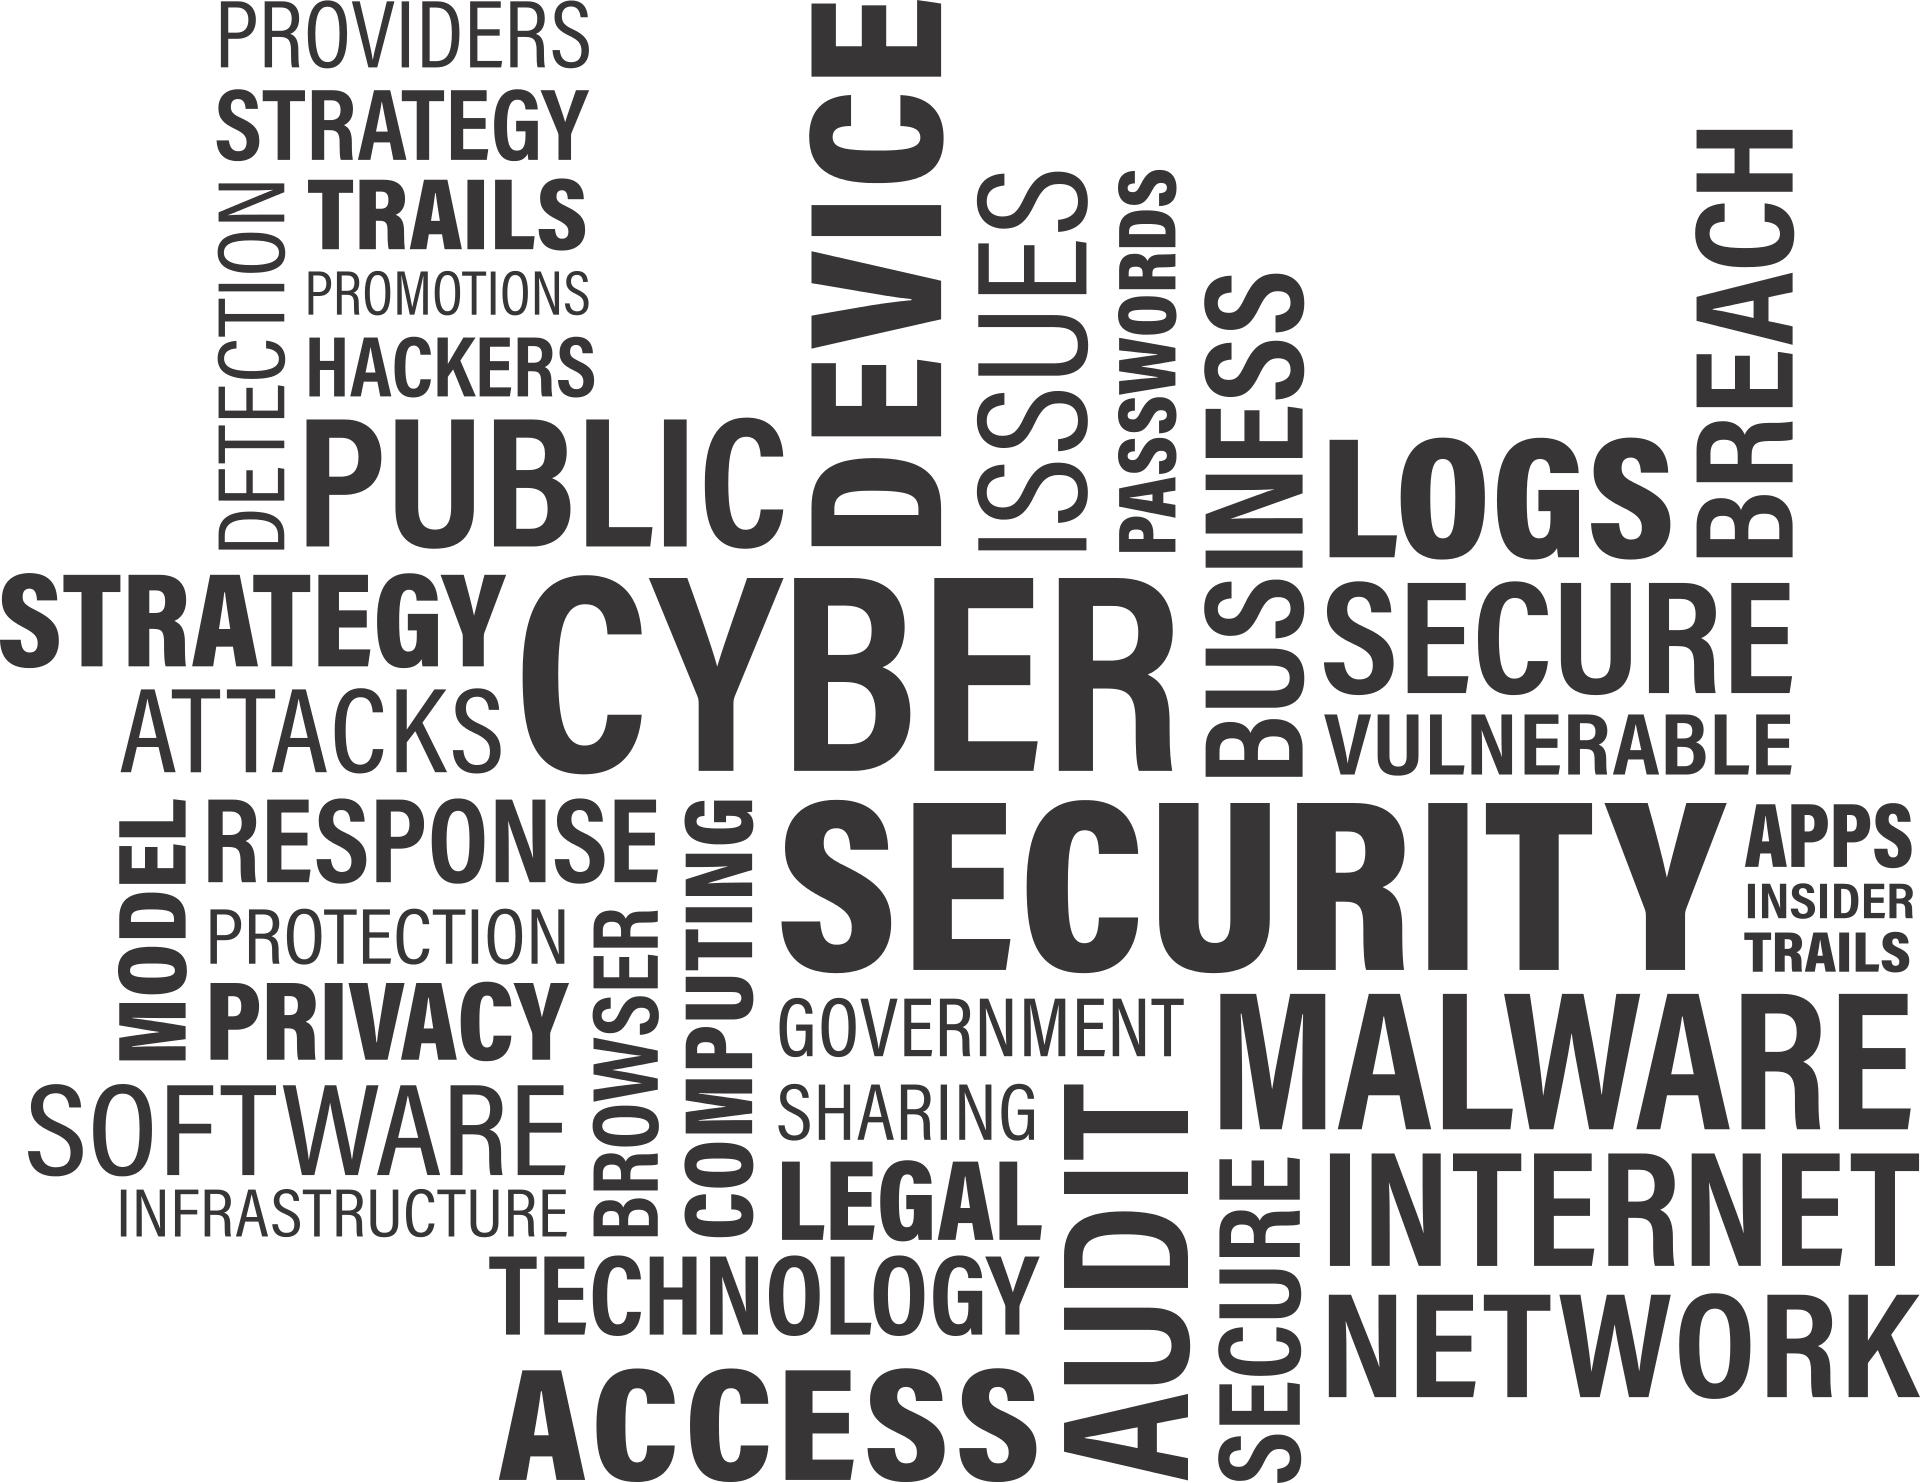 Cybersecurity, cloud data, privacy, word map